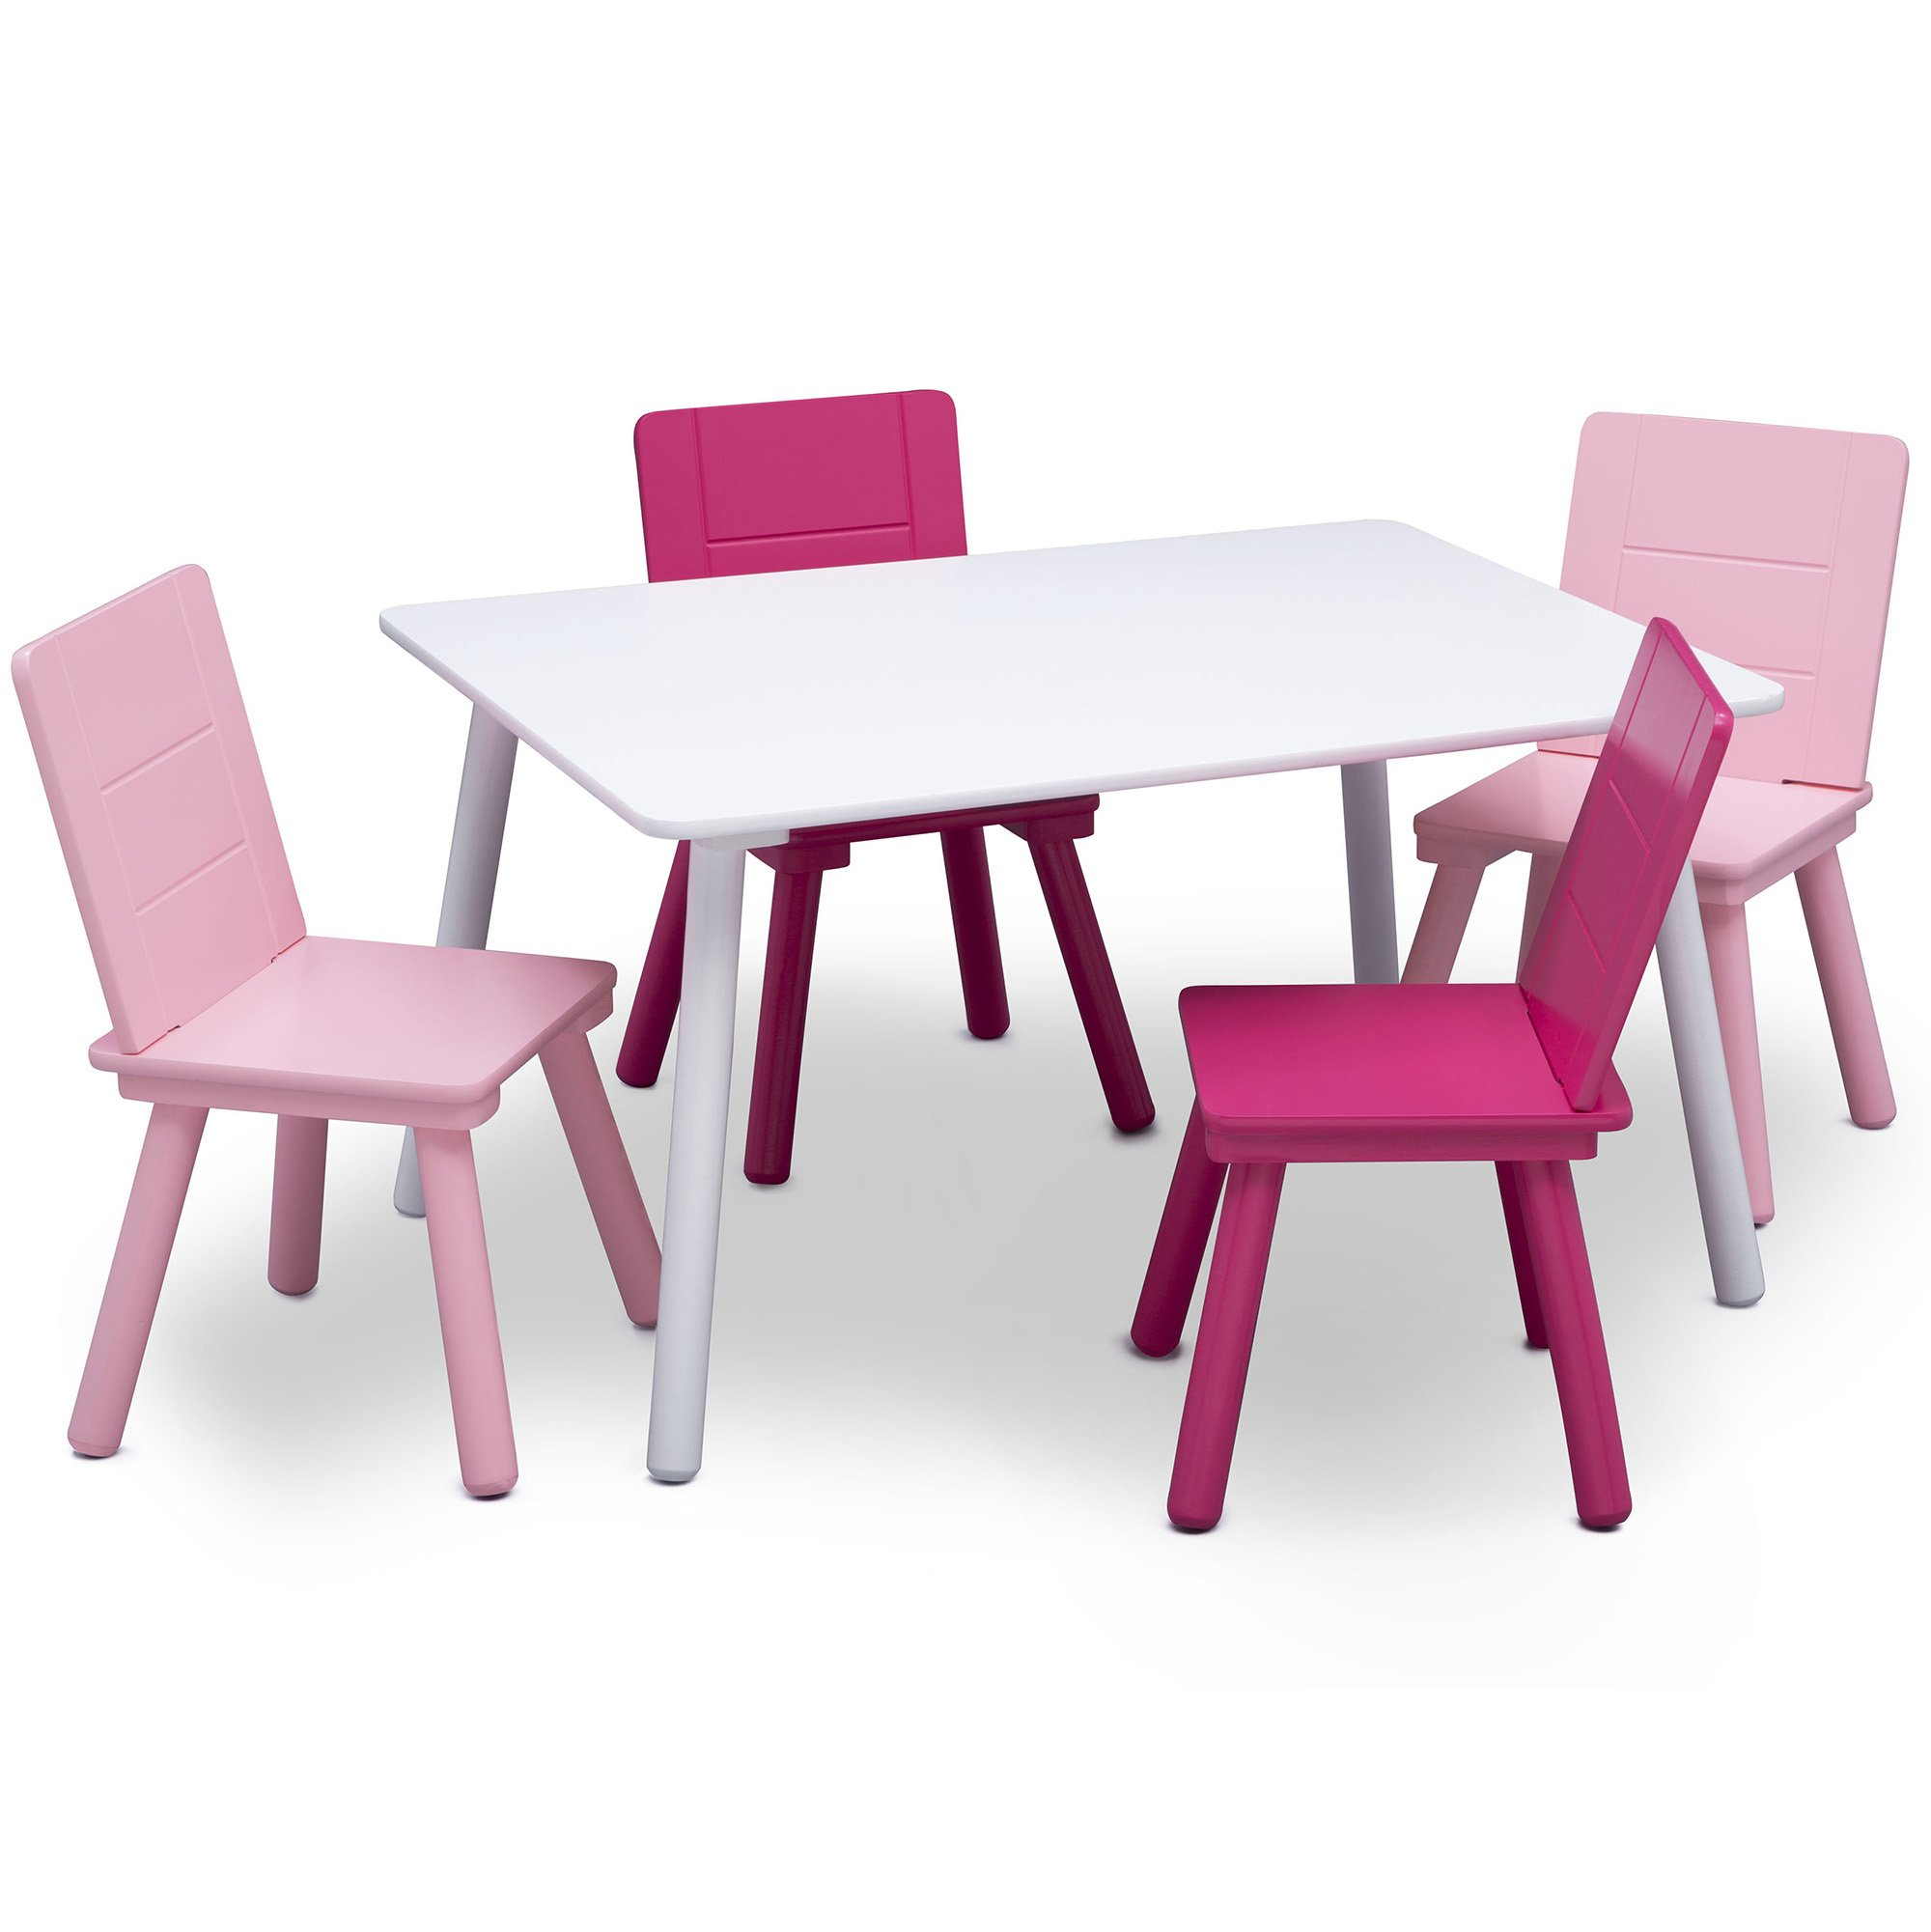 Amazon.com : Delta Children Kids Chair Set and Table (4 ...